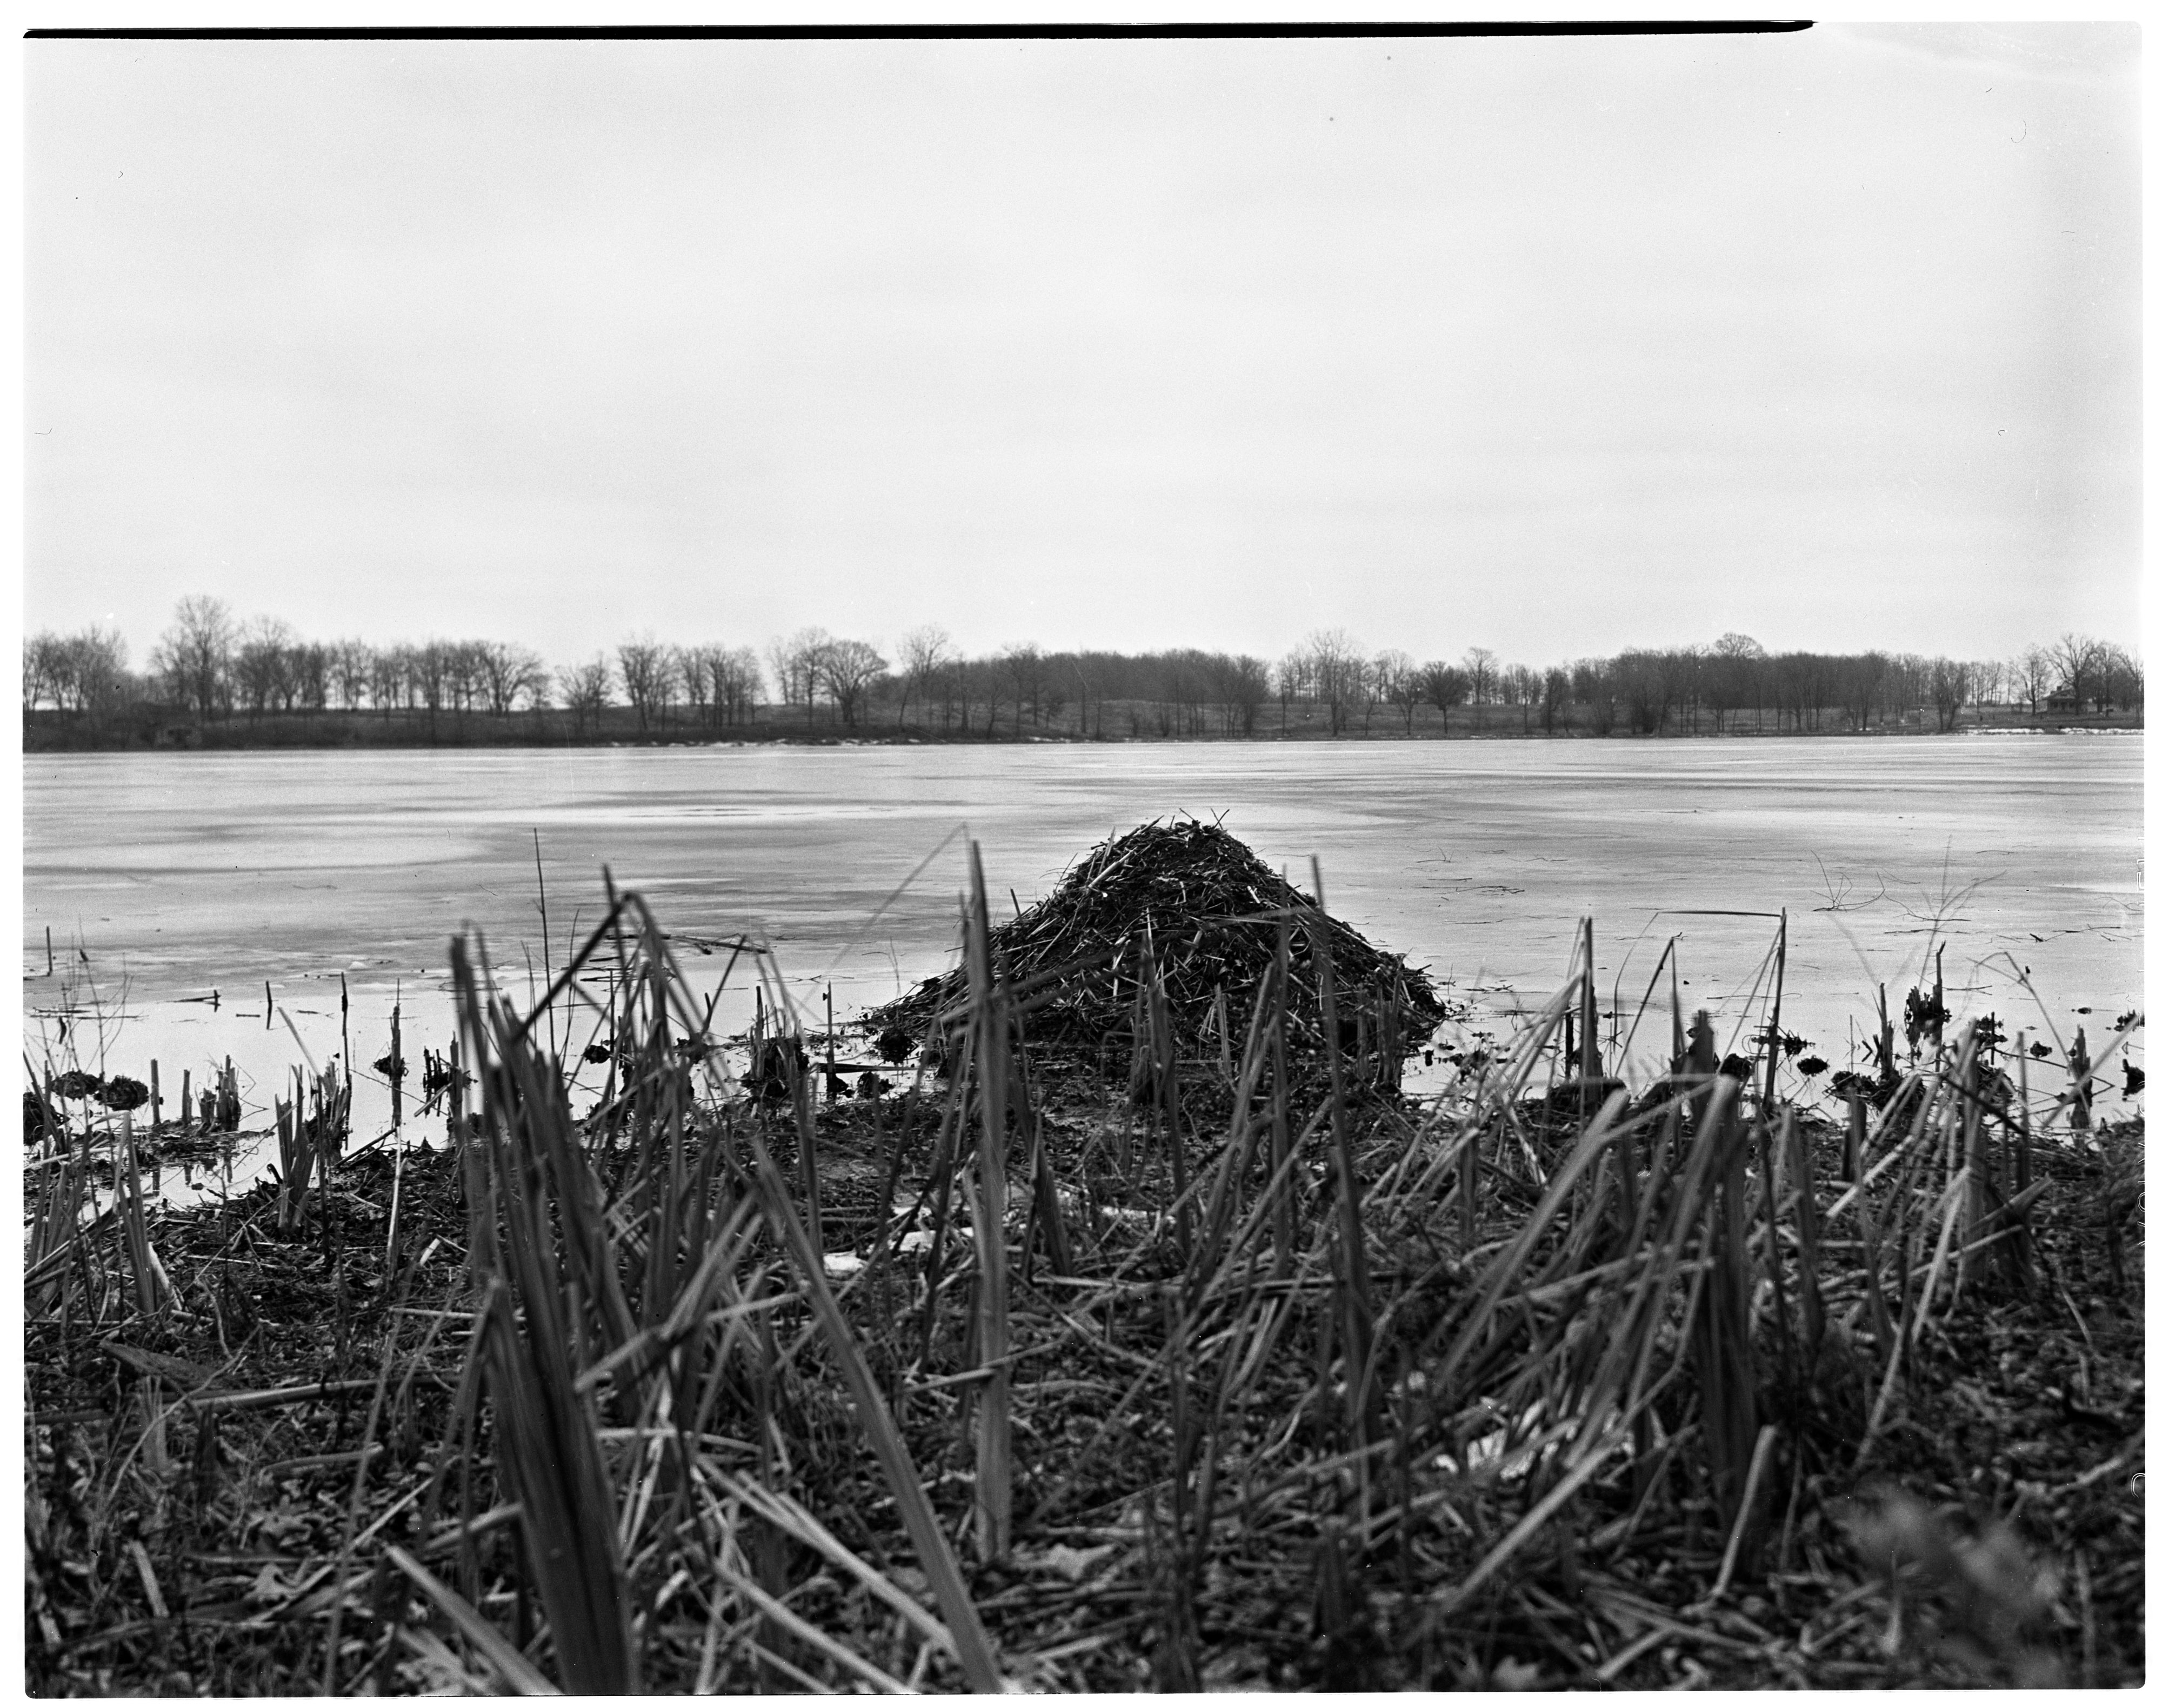 Muskrat Houses,  Silver Lake & Swamp image